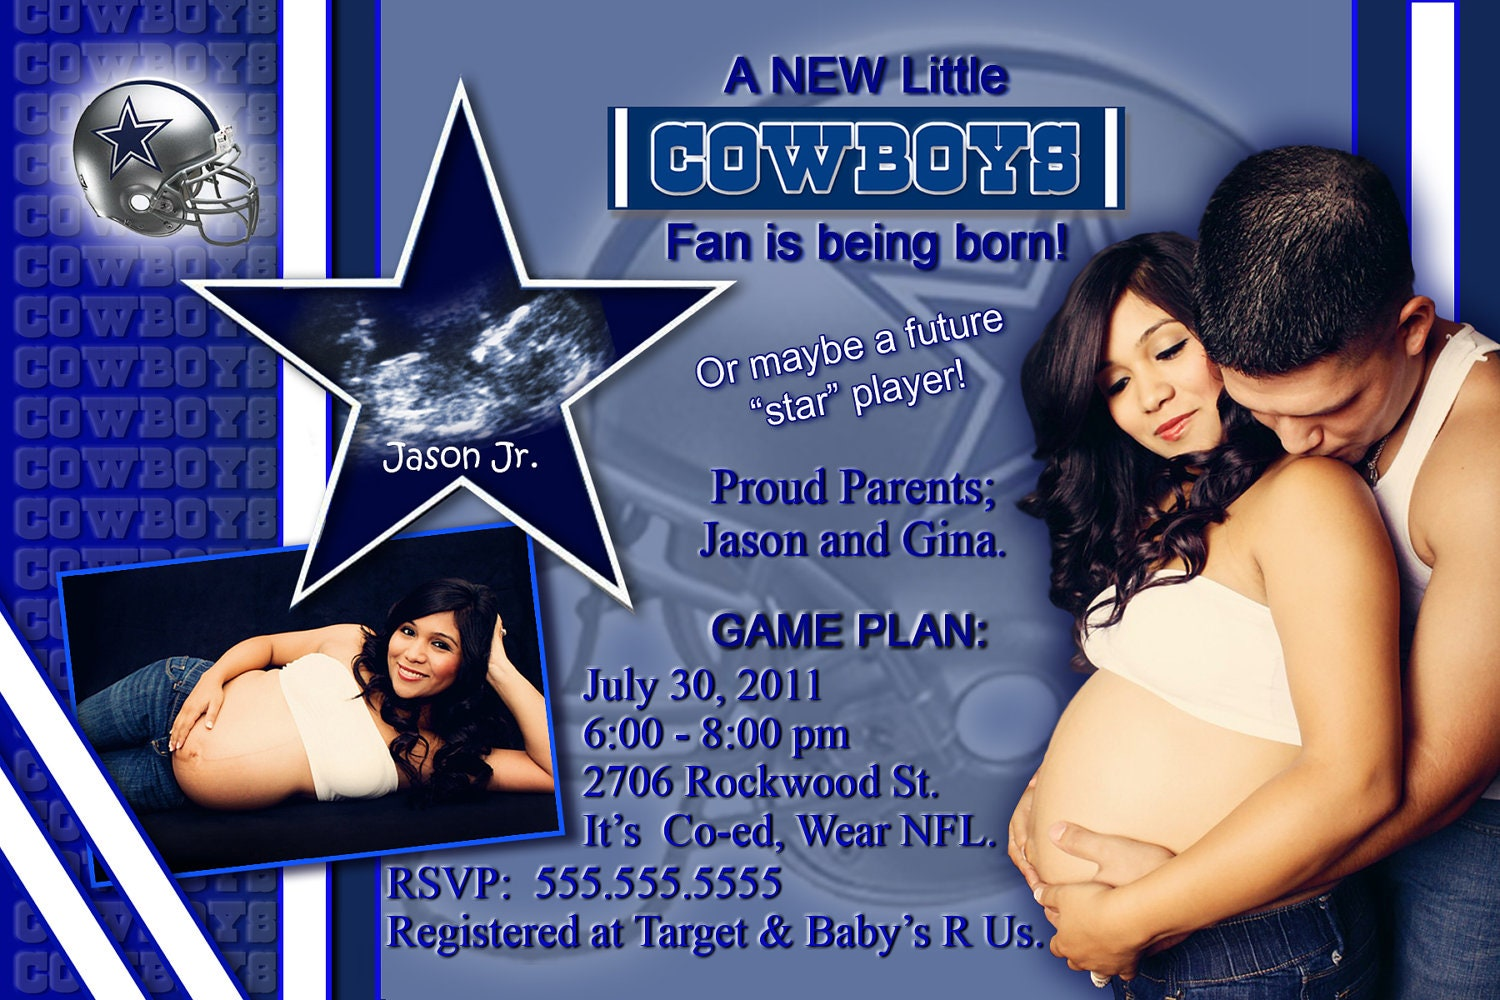 Dallas Cowboys Baby Shower Invitations is an amazing ideas you had to choose for invitation design